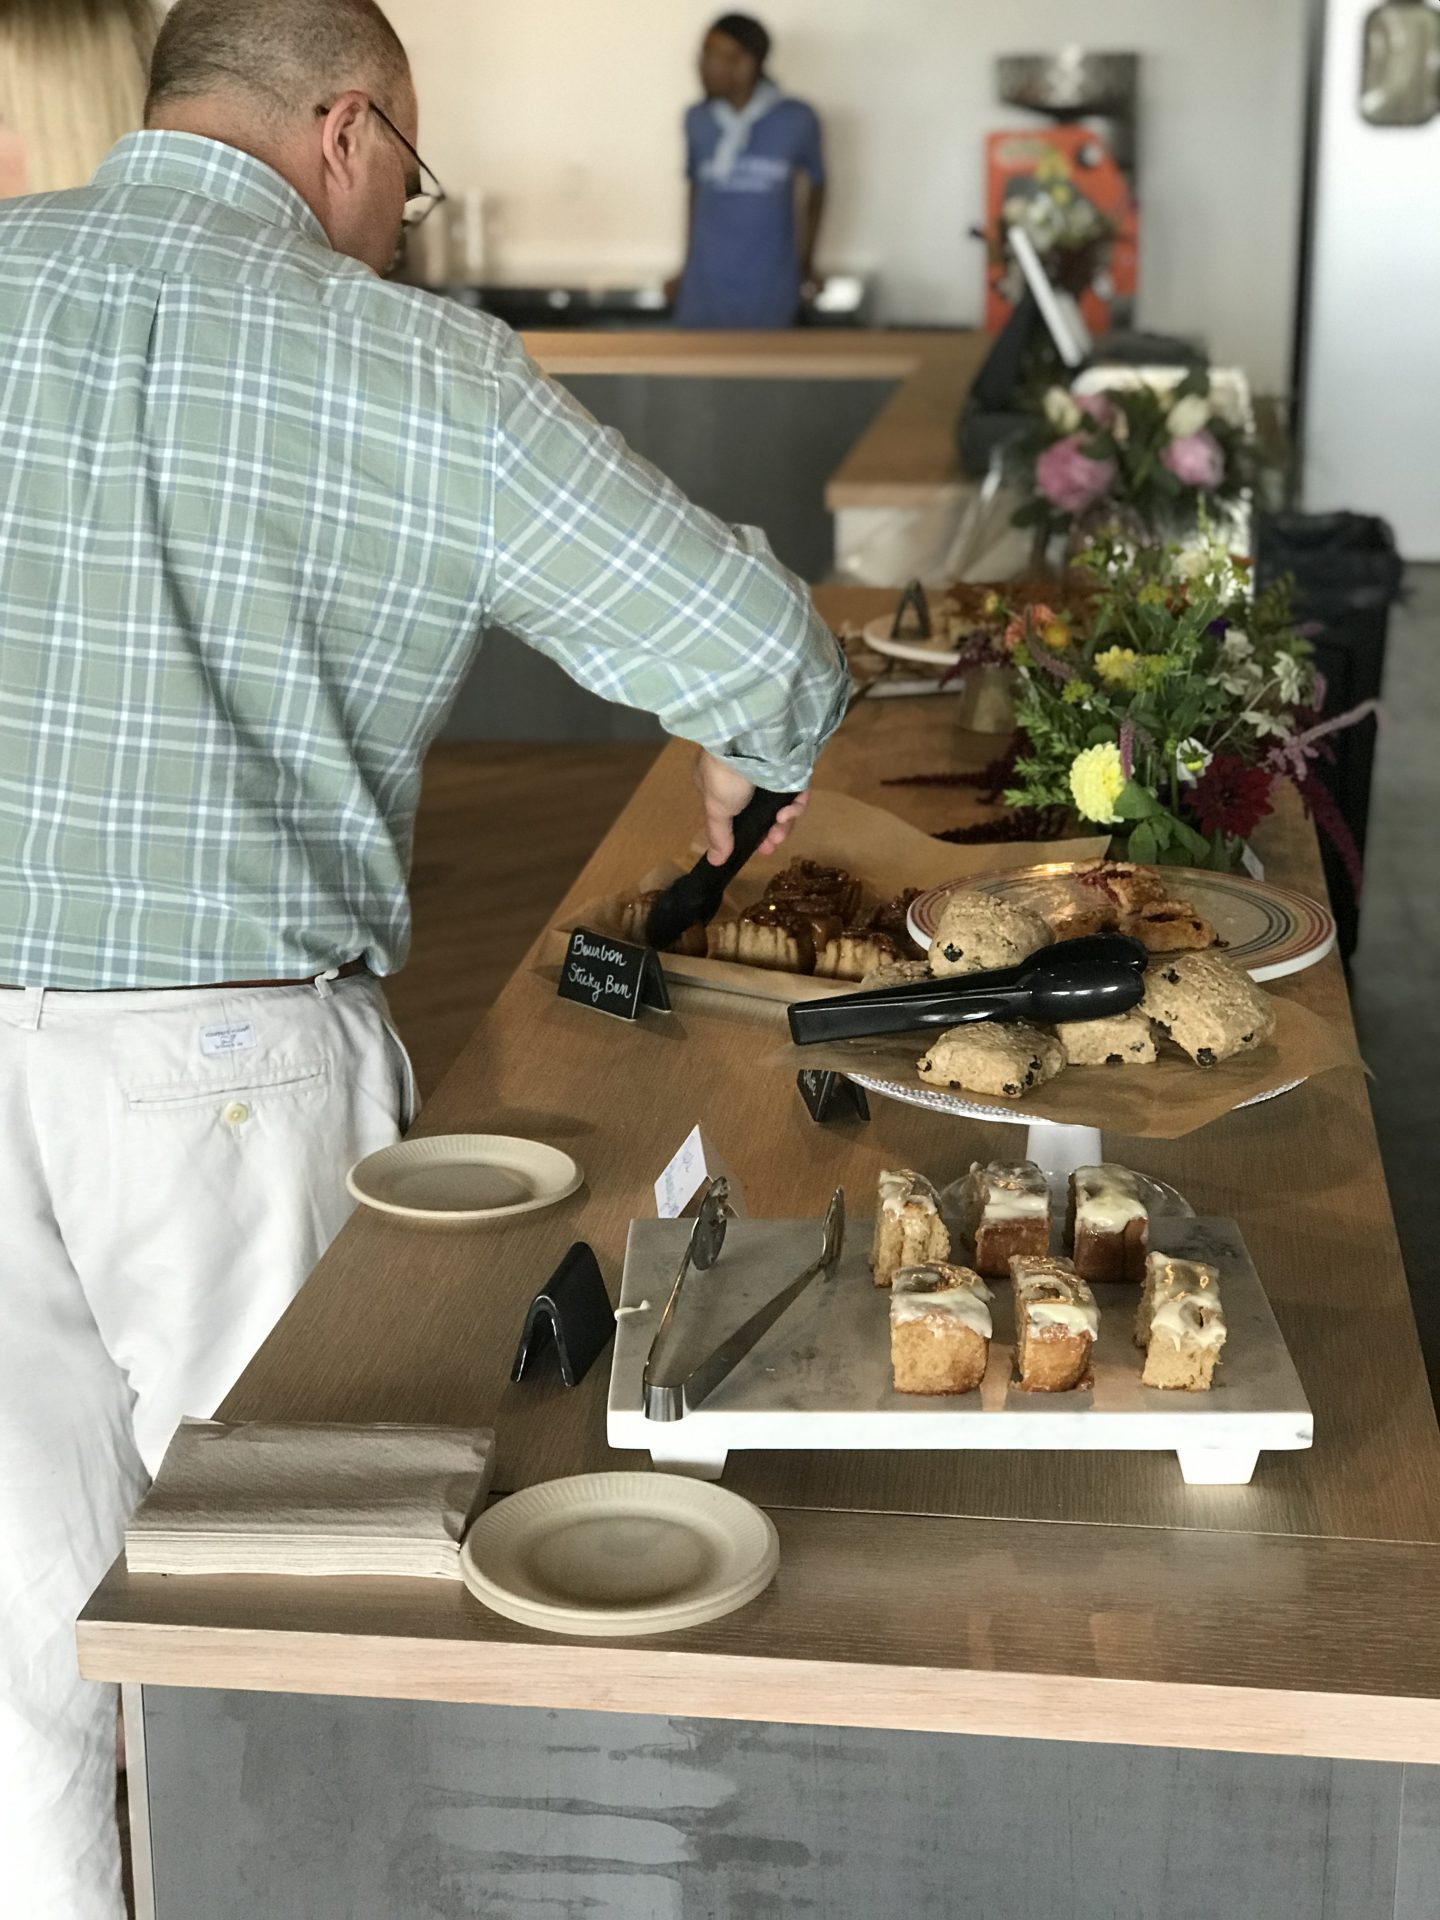 Man picking out a dessert from a dessert table